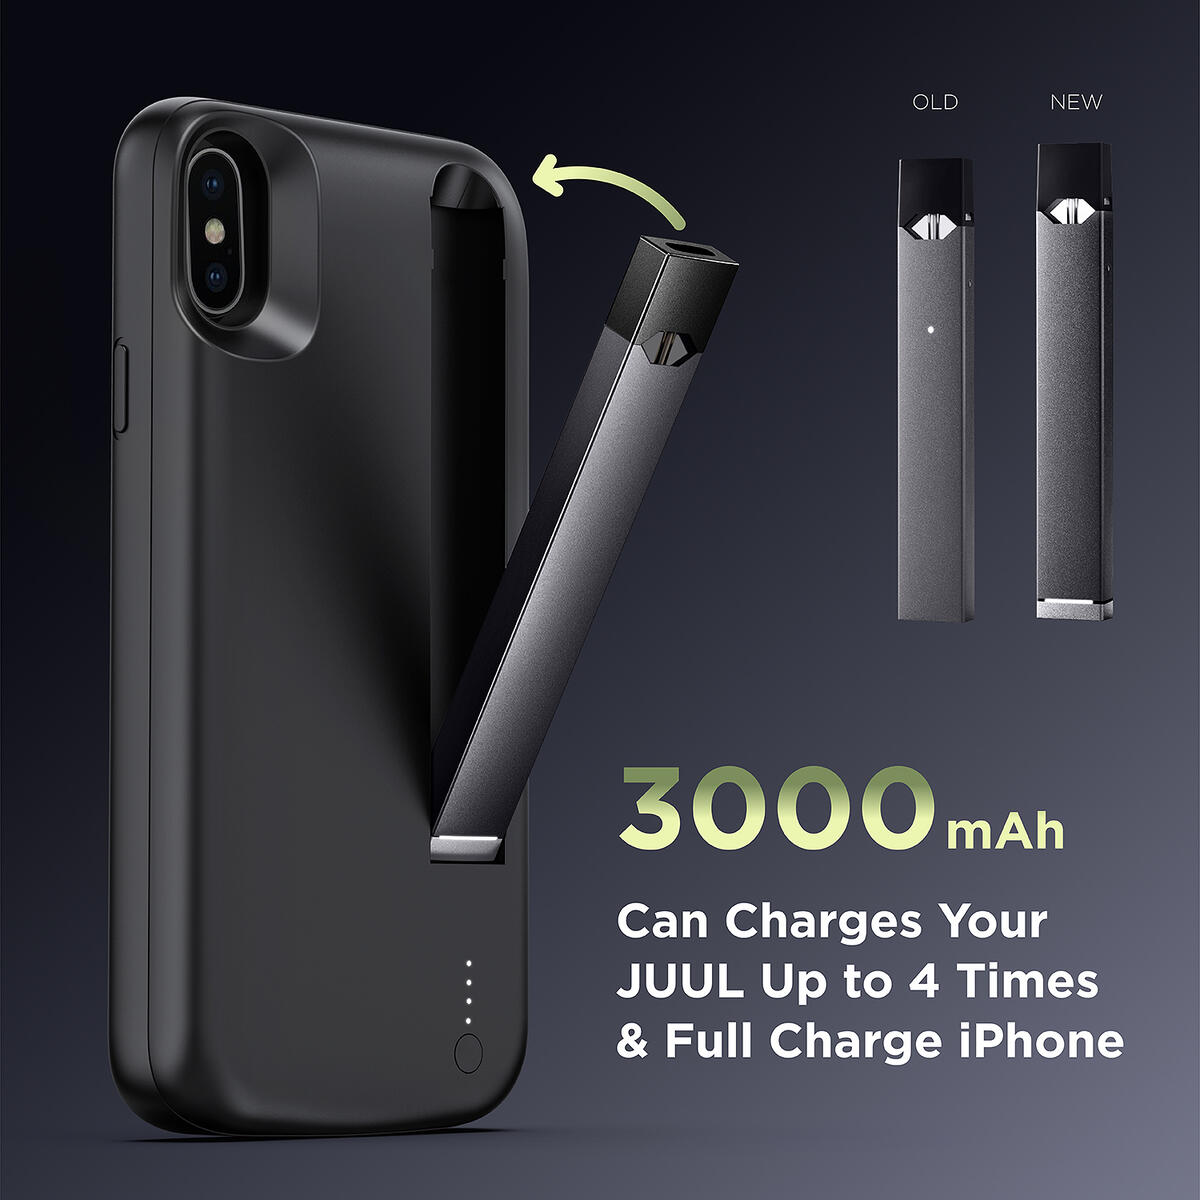 INGNOK Battery Case for iPhone X/XS, 2020 Upgraded [Charger for JUUL] Can Charger for iPhone and Device, Smart Portable Charger Case with Built-in JUUL Charging Port- Black